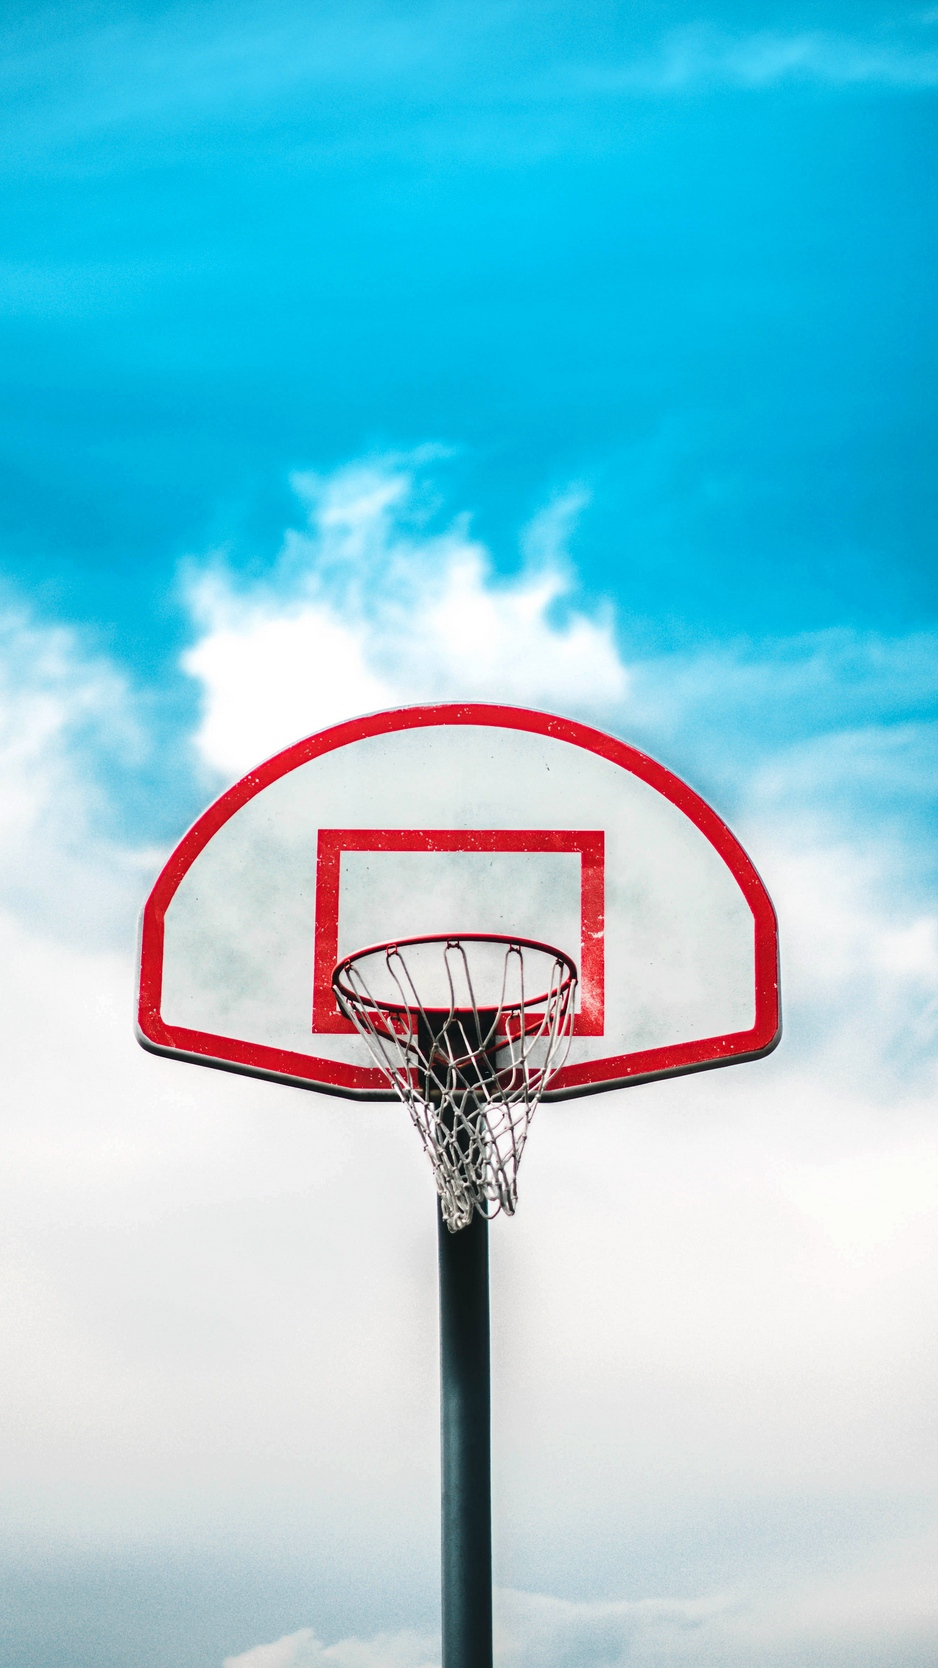 Basketball Wallpaper For Iphone 6 Posted By Christopher Simpson